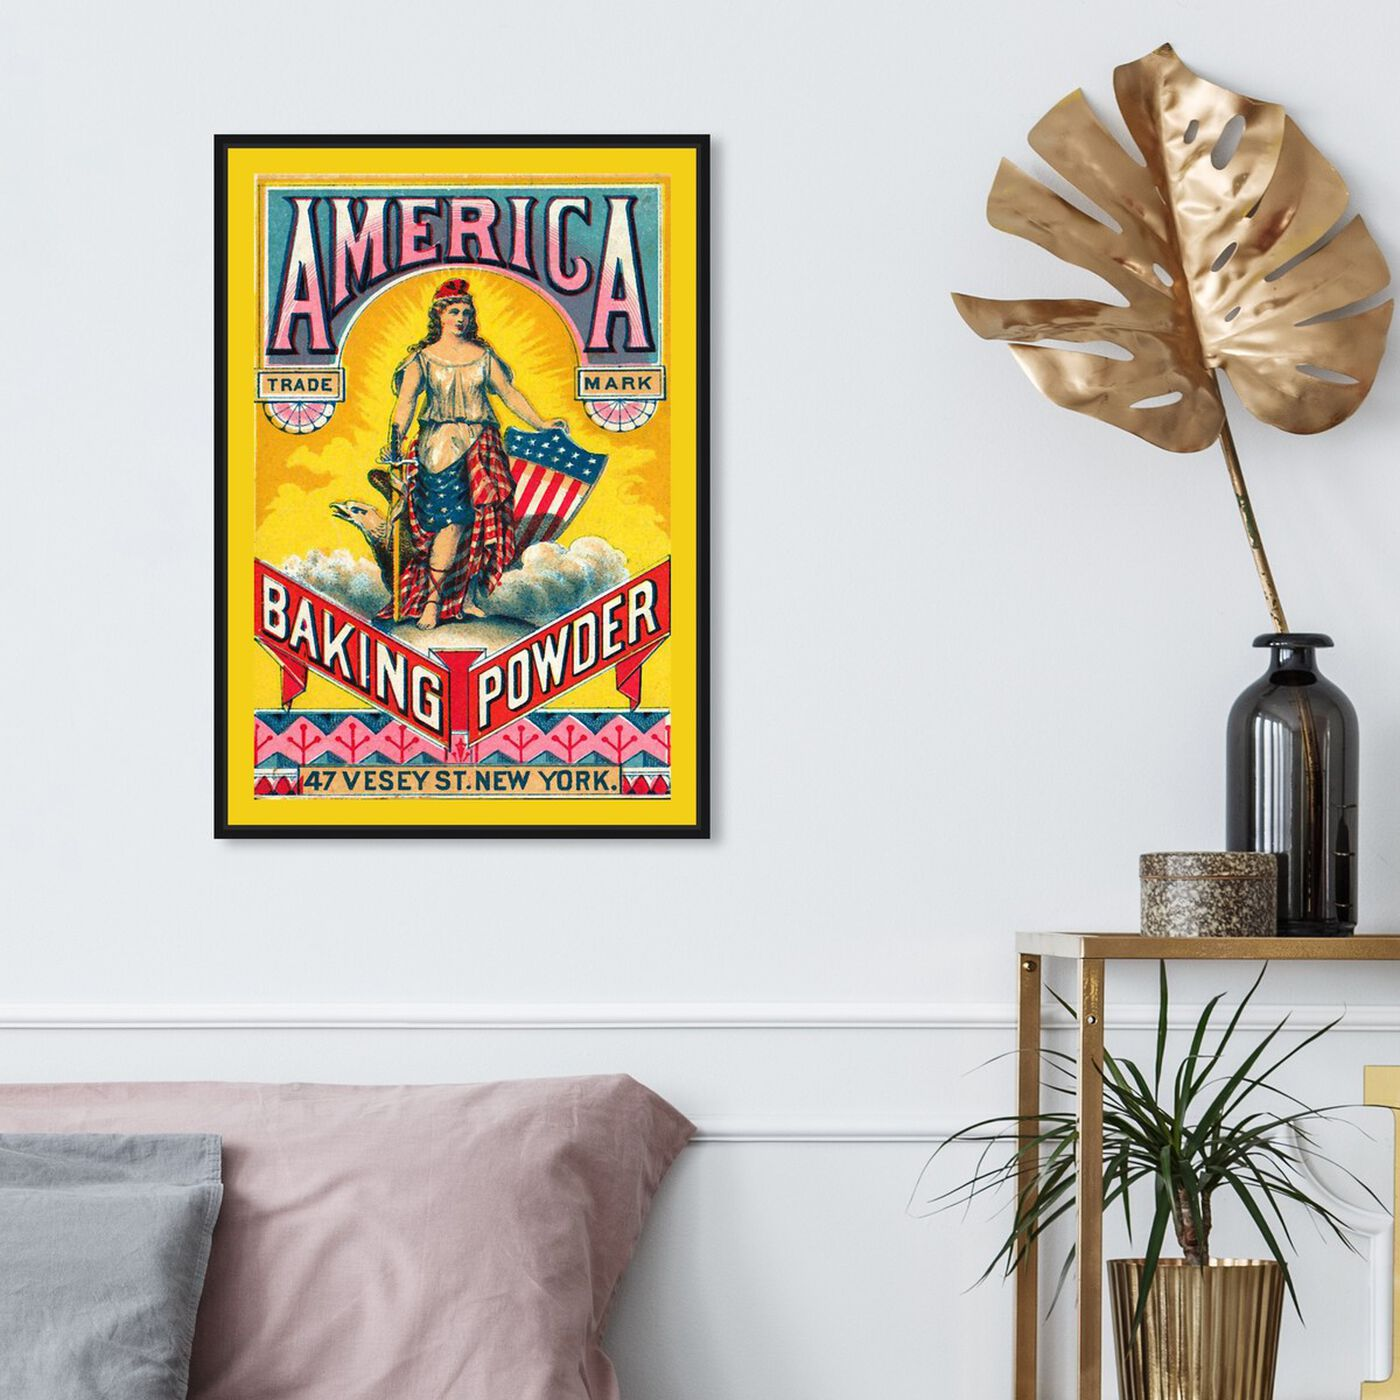 Hanging view of America Baking Powder featuring advertising and promotional brands art.